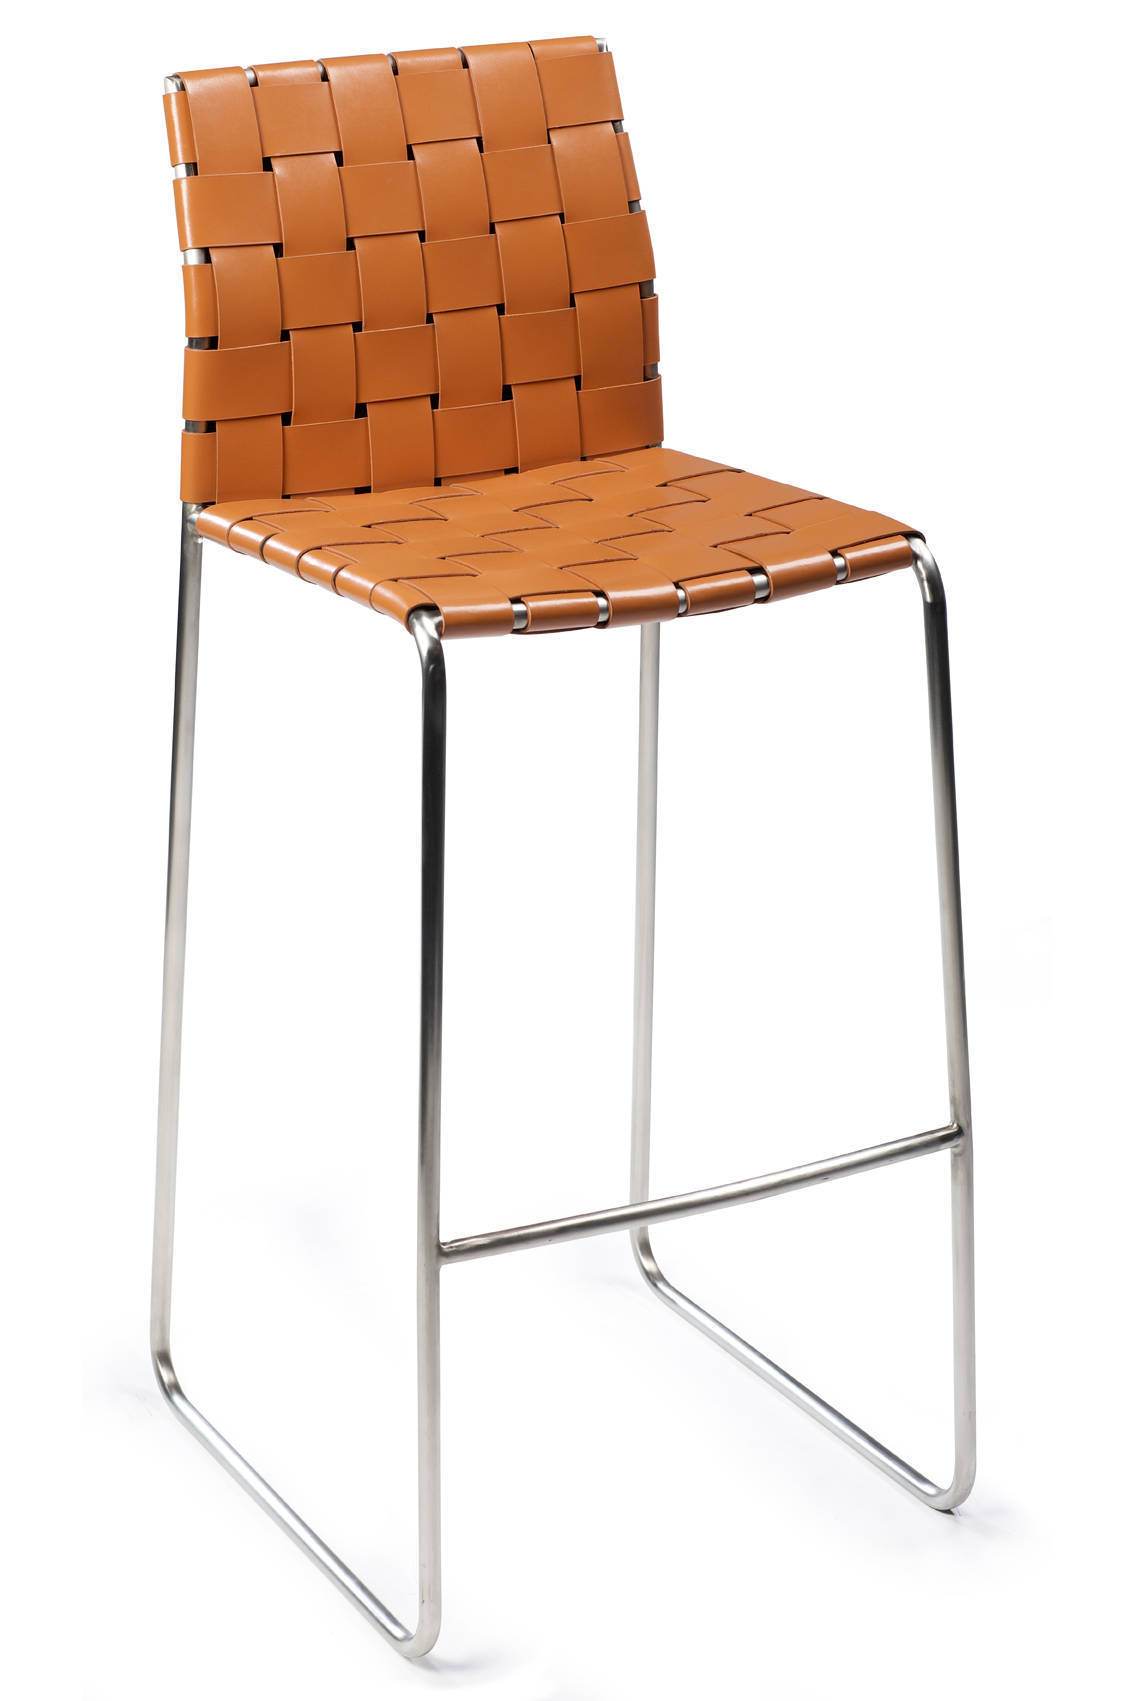 Tabouret de bar orange maison design - Vertiges position couchee ...